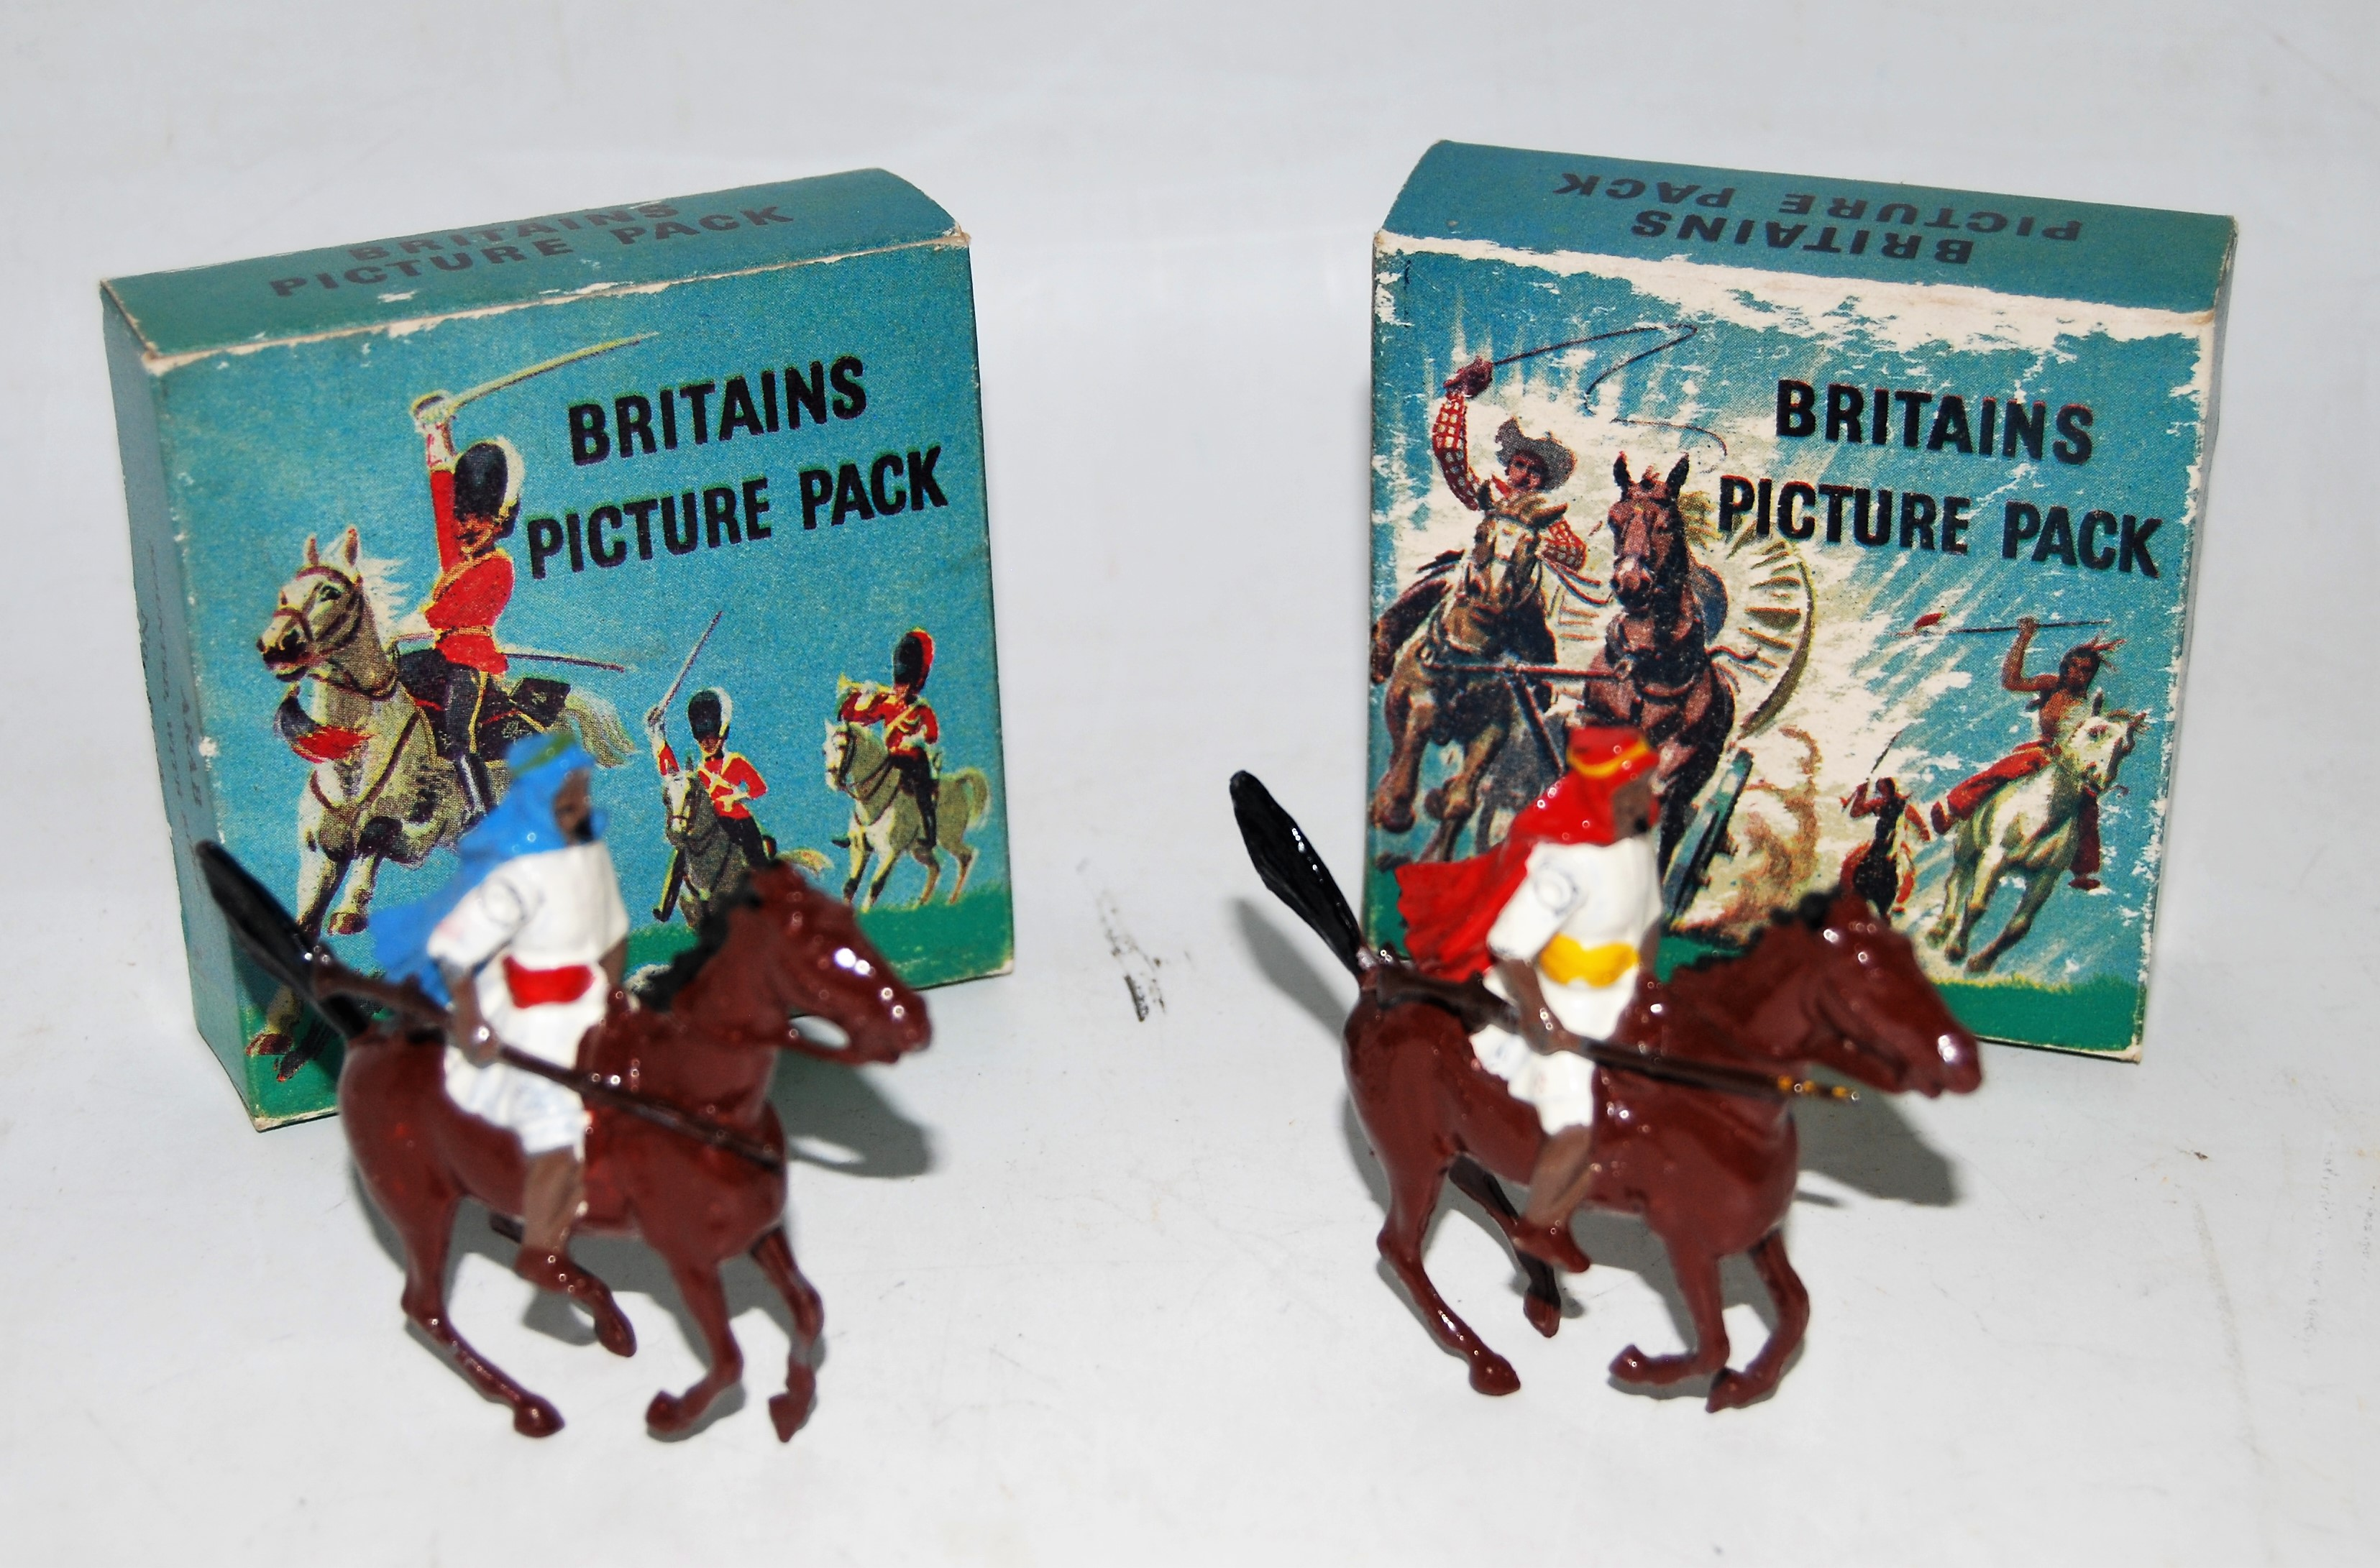 Two boxed Britains Picture pack series, No. 829B mounted Arabs with rifles, both housed in the